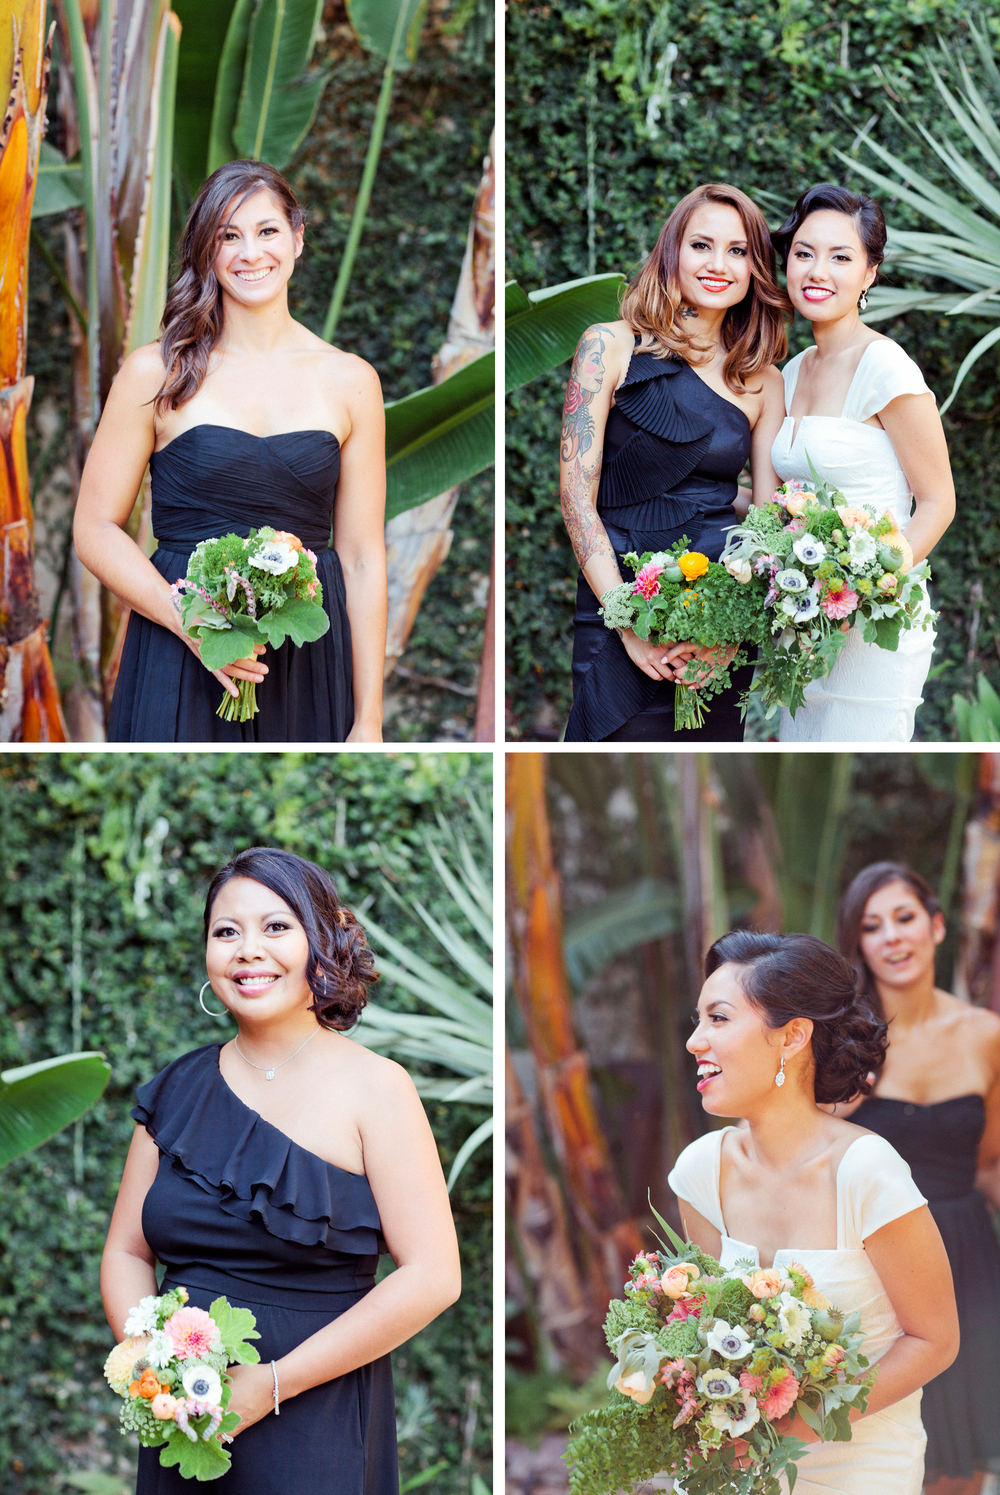 Marmivon-Los-Angeles-Wedding-Photography